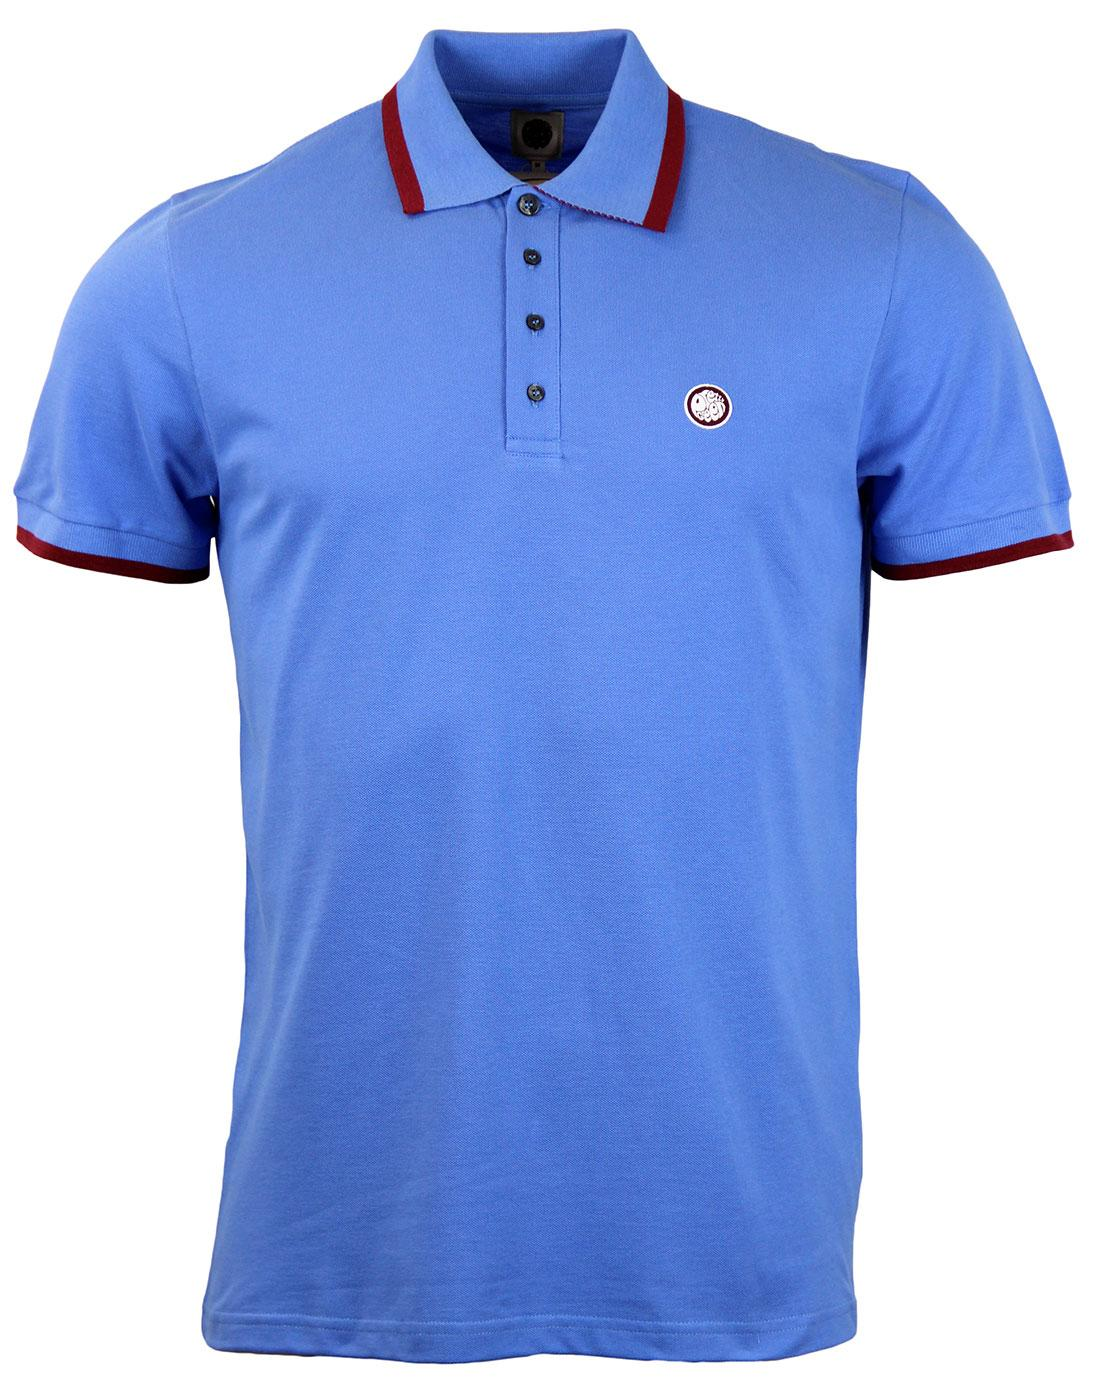 PRETTY GREEN Retro Mod Multistripe Pique Polo BLUE